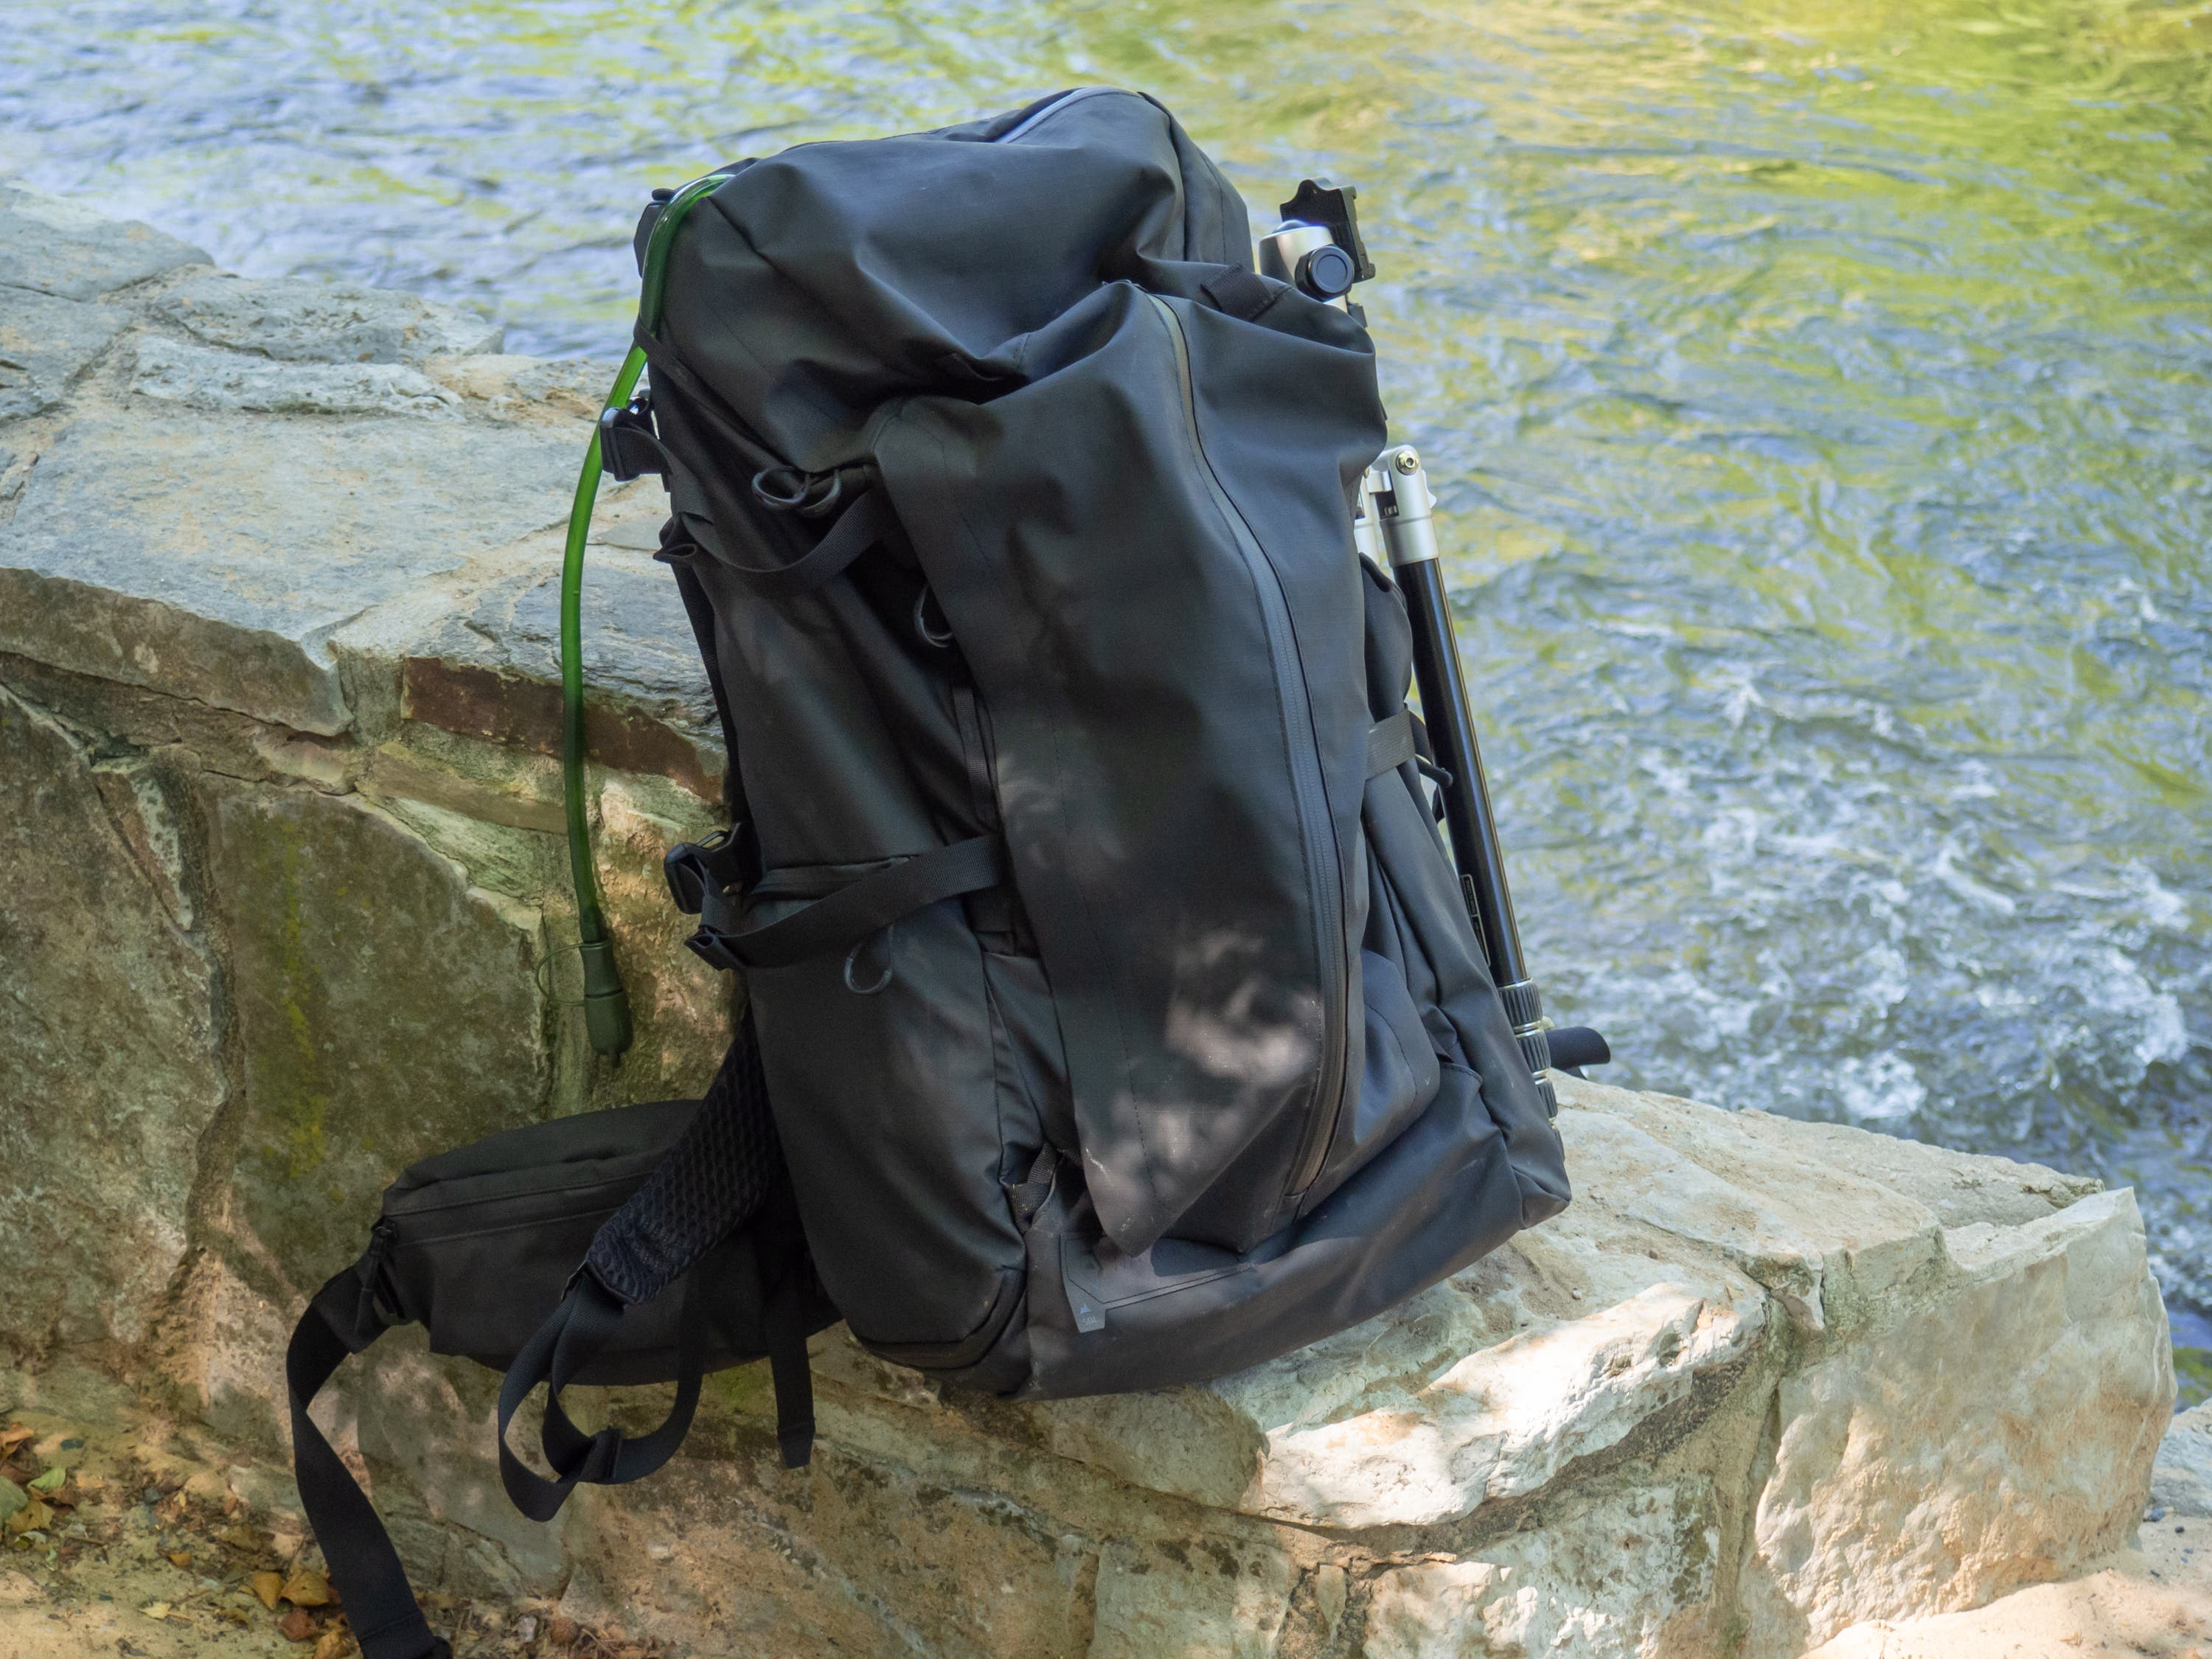 The Reasons You Need a Backpack as Your Next Camera Bag